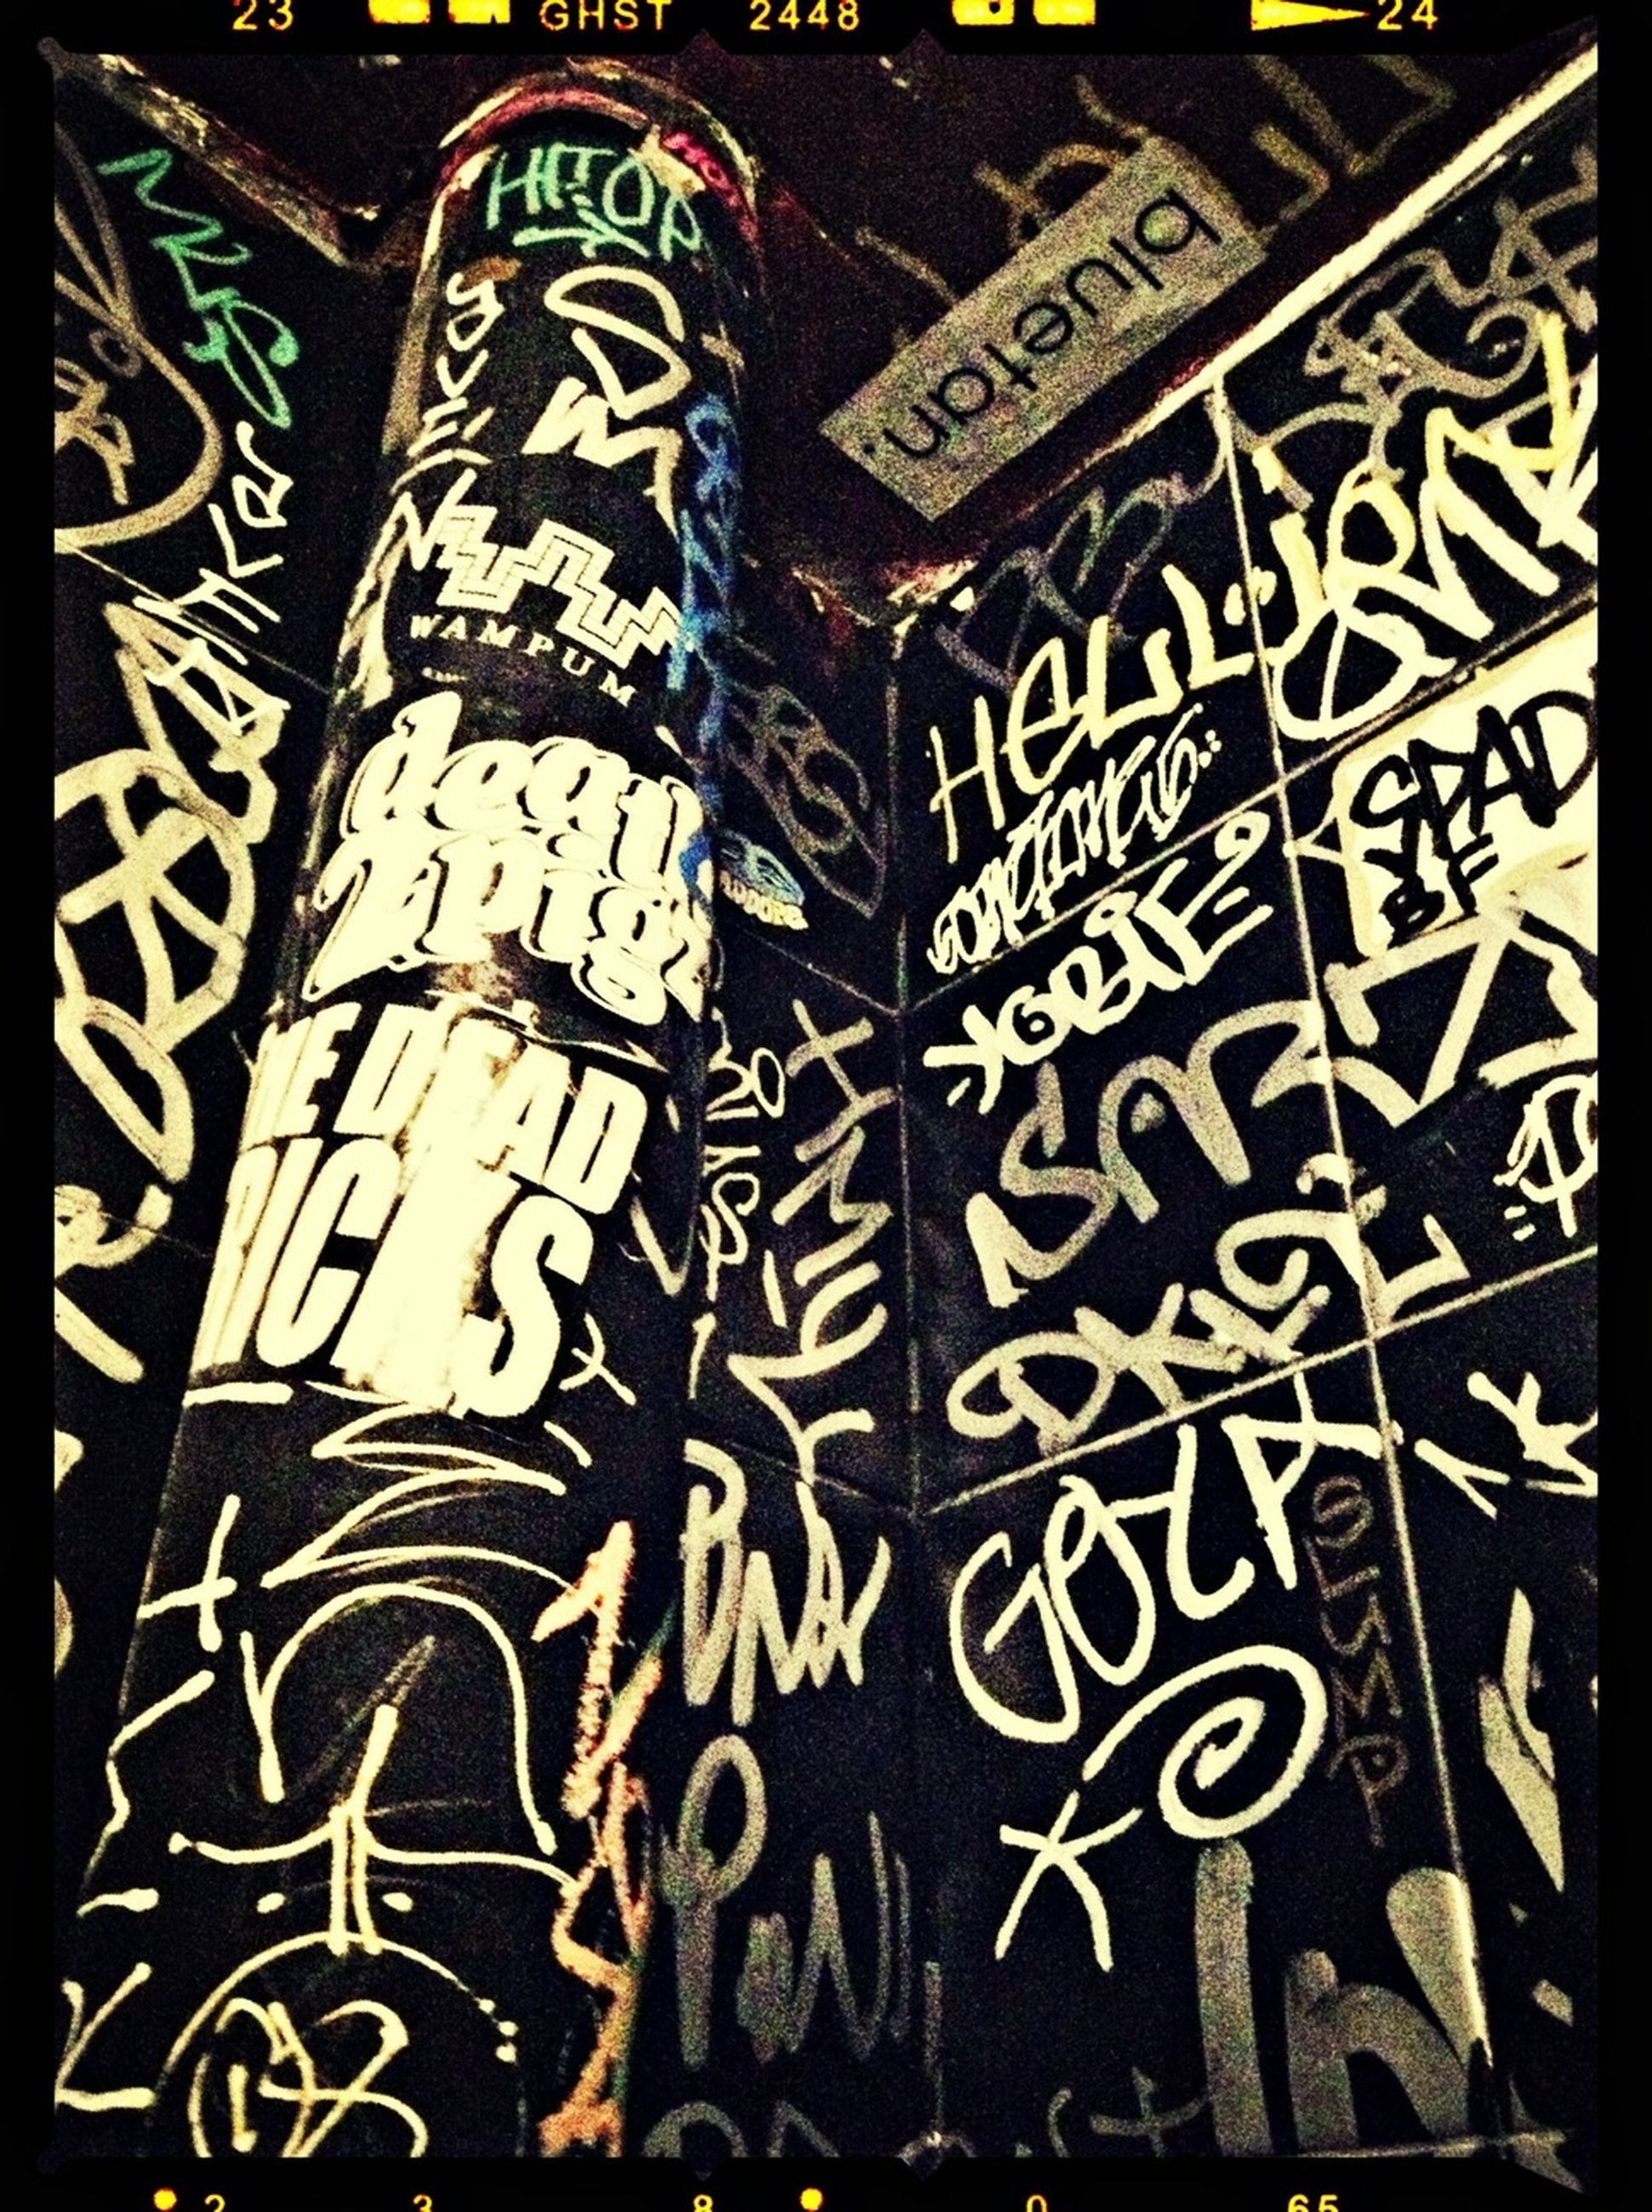 graffiti, art, creativity, indoors, art and craft, transfer print, pattern, design, wall - building feature, auto post production filter, built structure, architecture, text, human representation, wall, street art, western script, communication, one person, day